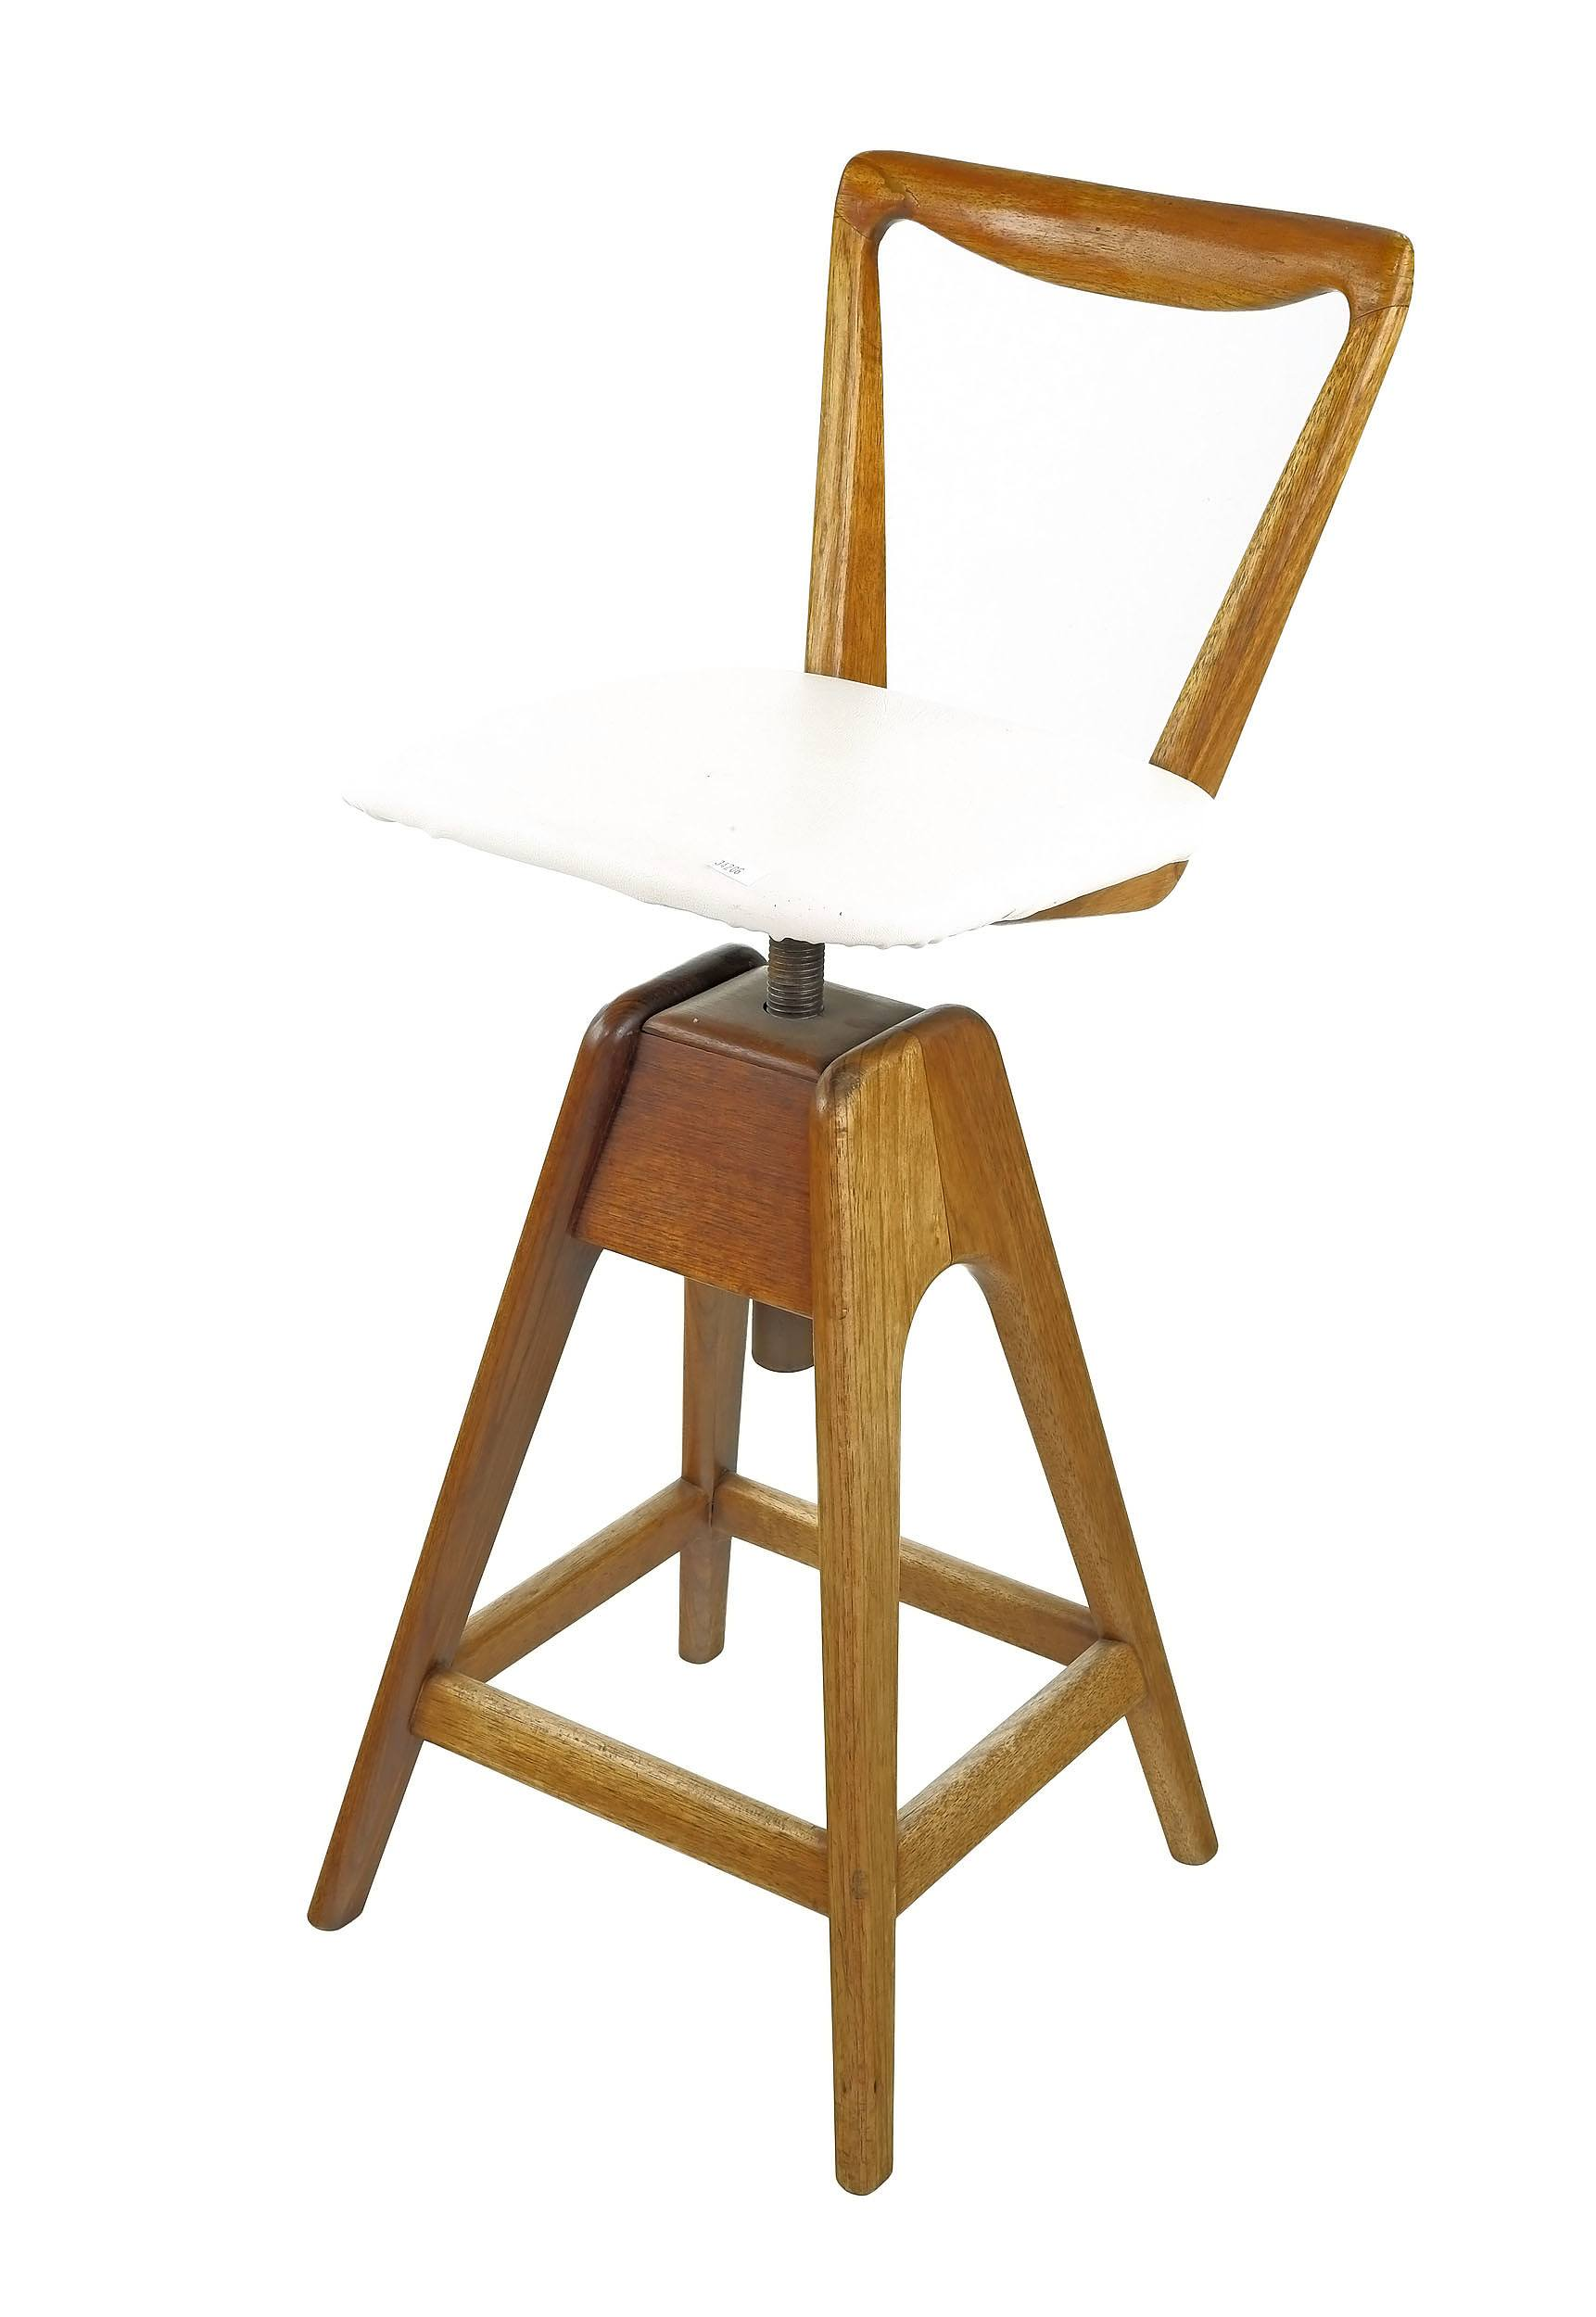 'T.H. Brown Tasmanian Blackwood Adjustable Stool'